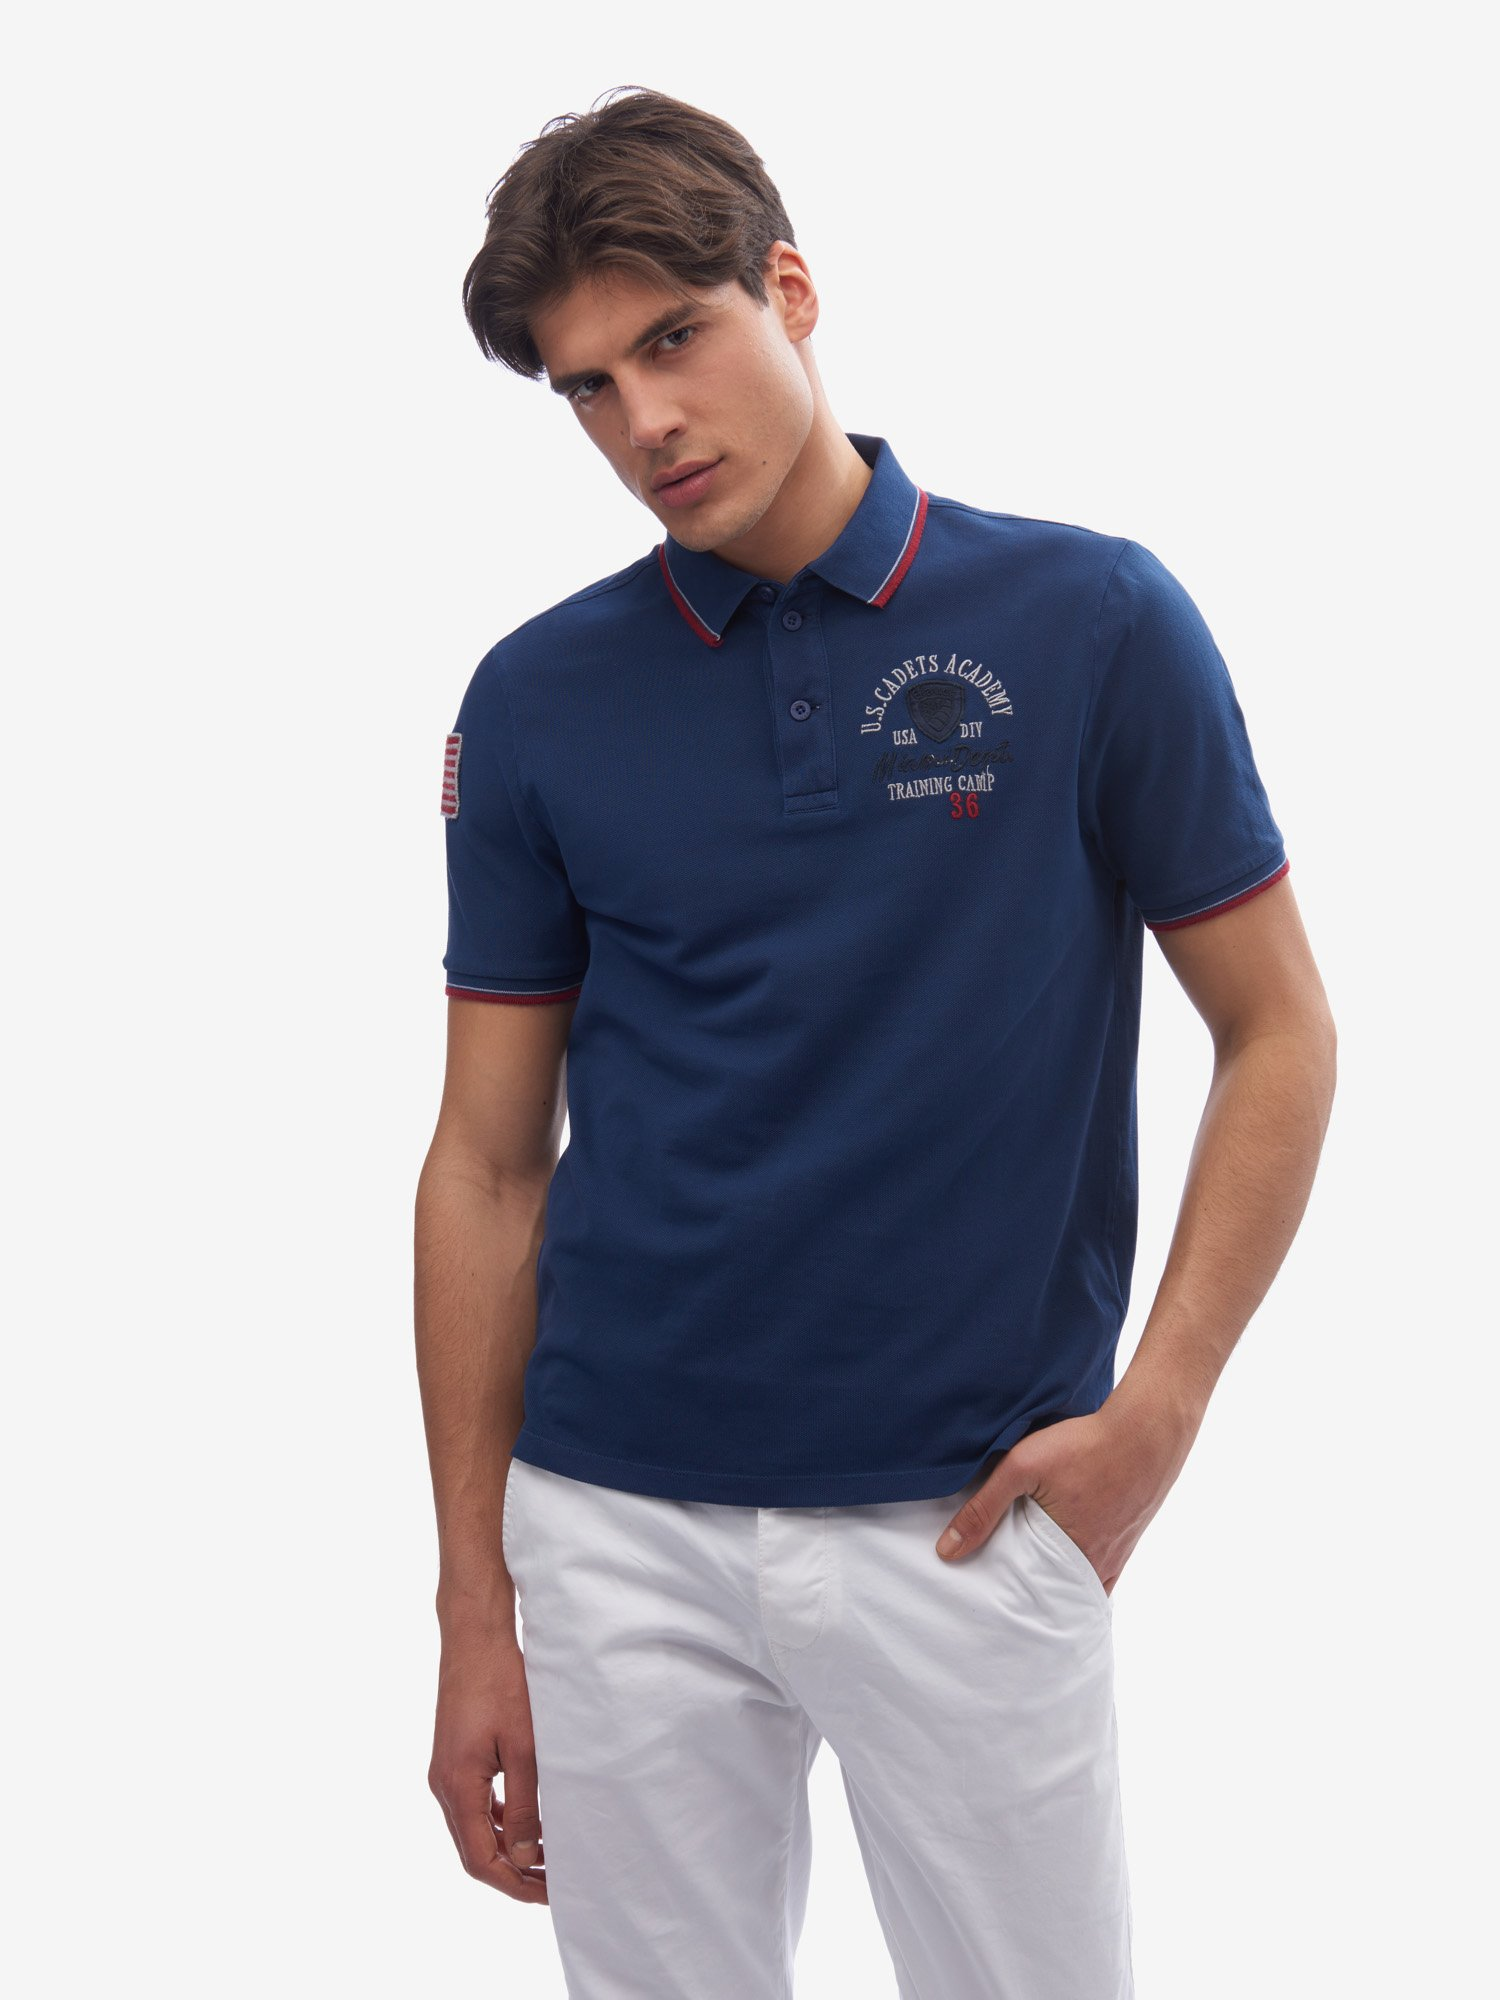 POLO MIAMI DEPARTMENT - Blauer